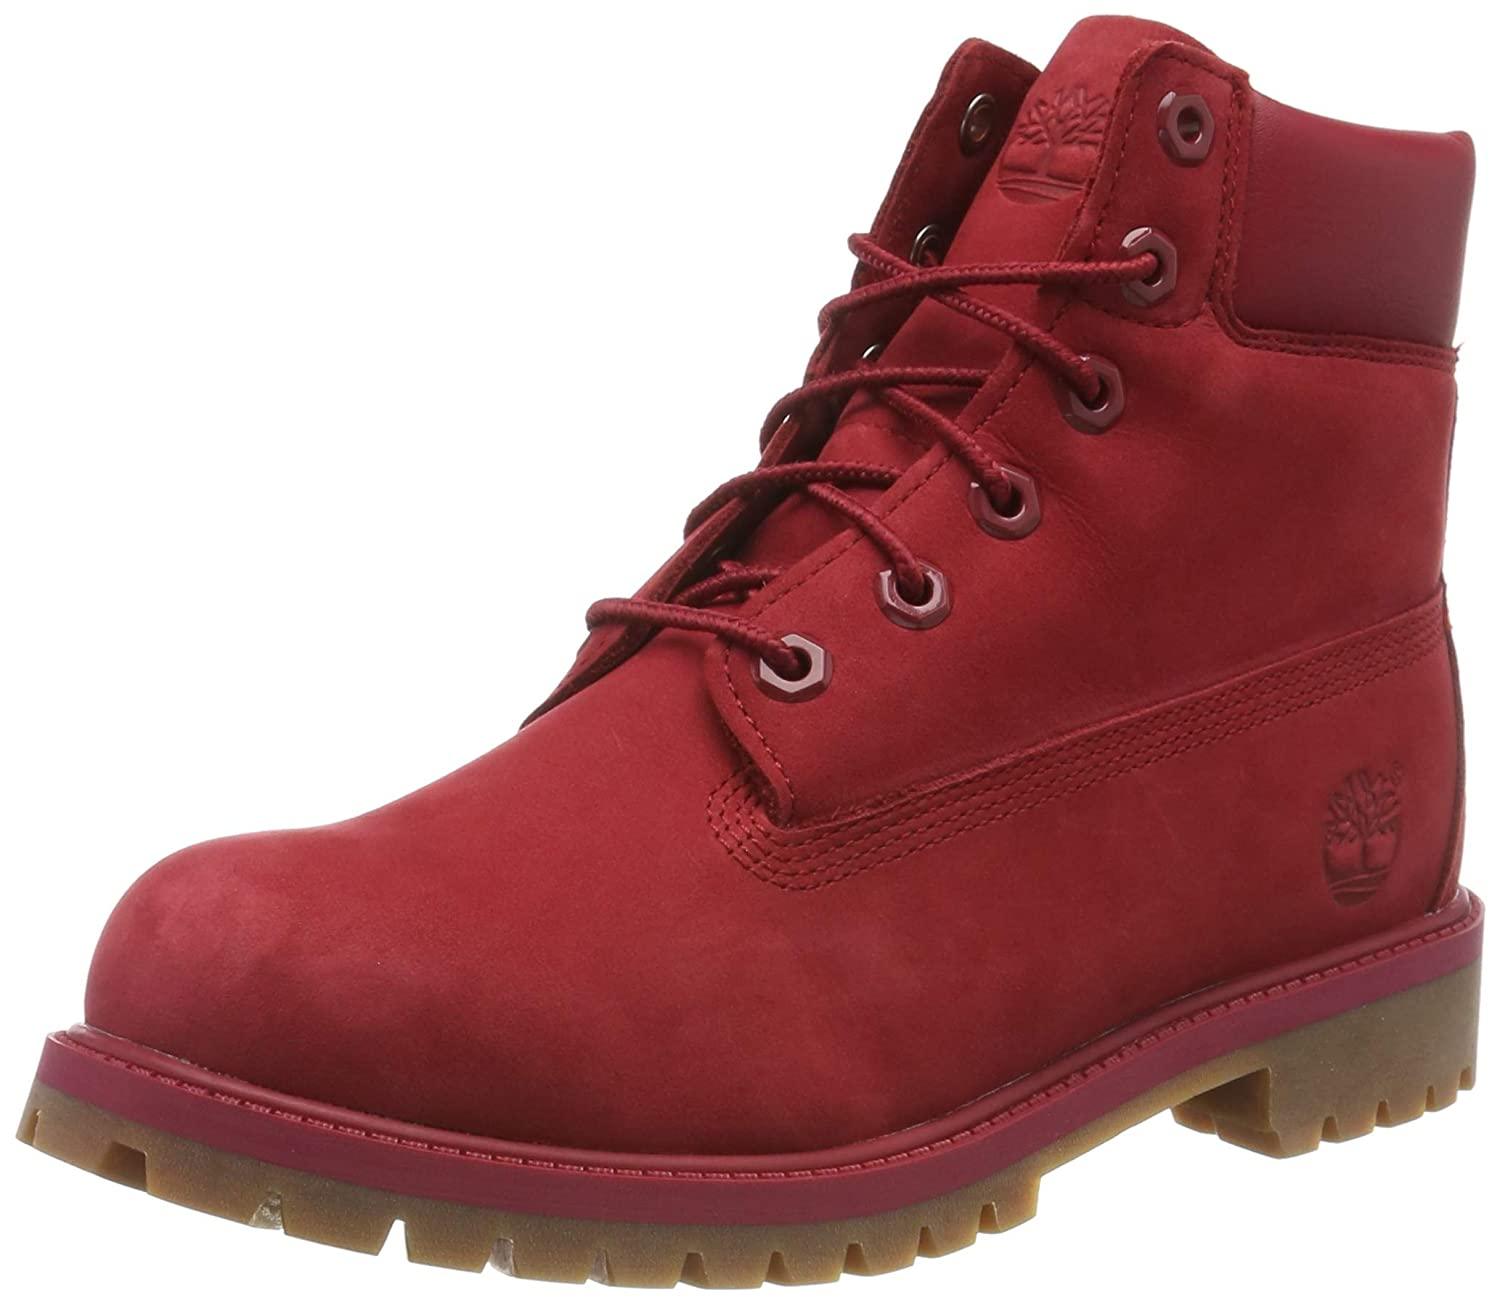 new specials hot sales unique design Timberland - 6 IN Premium WP Boot Red - CA13HV